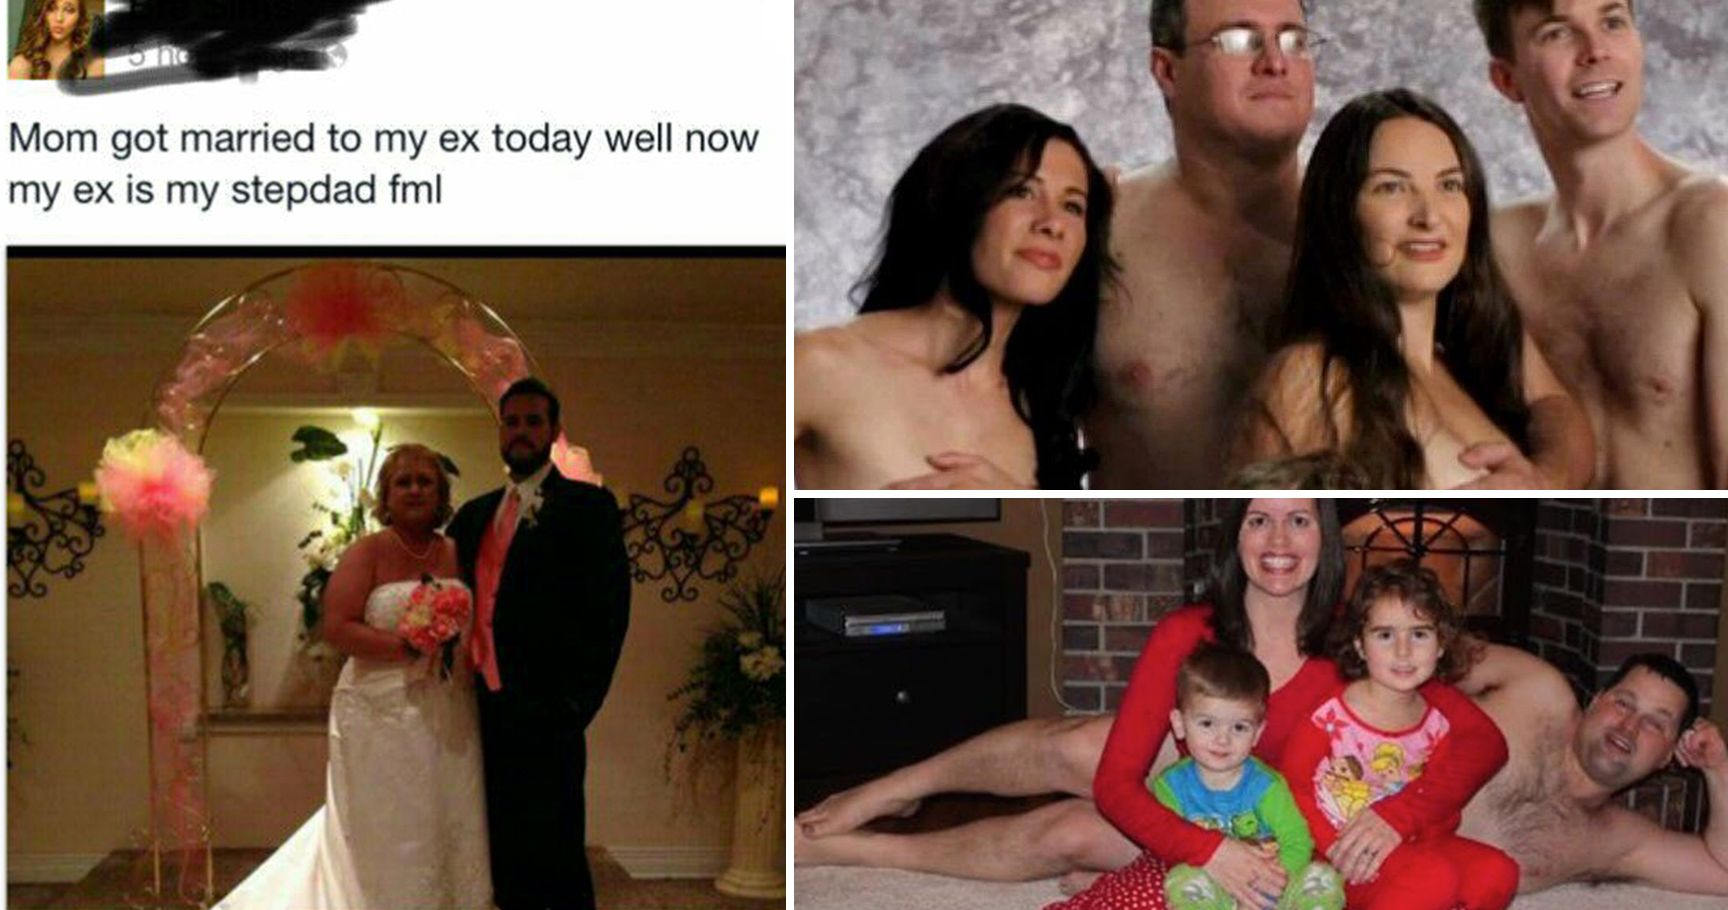 15 Idiotic Family Photos That Shouldn't Have Been Posted